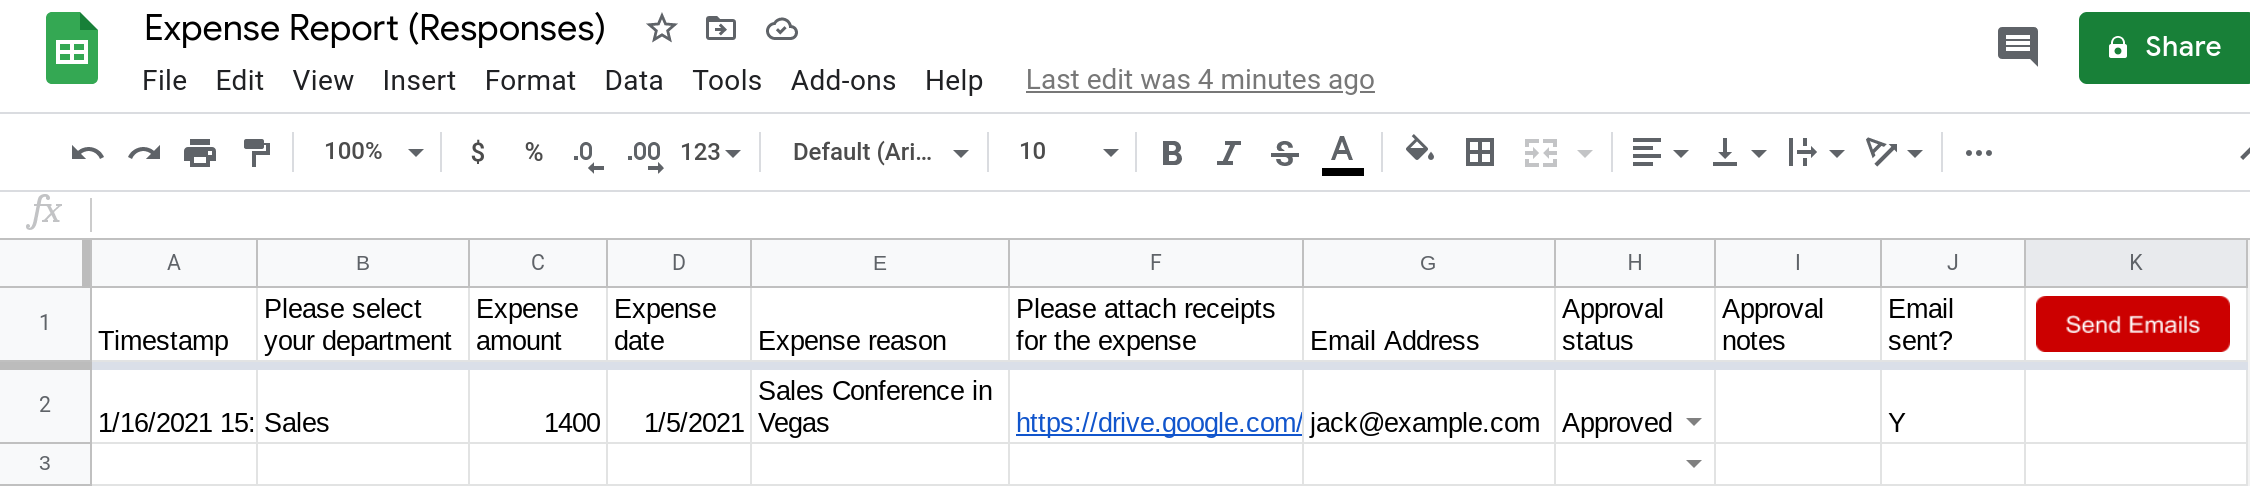 Screenshot of a Google Sheets spreadsheet with a drawing inserted in it that looks like a button.